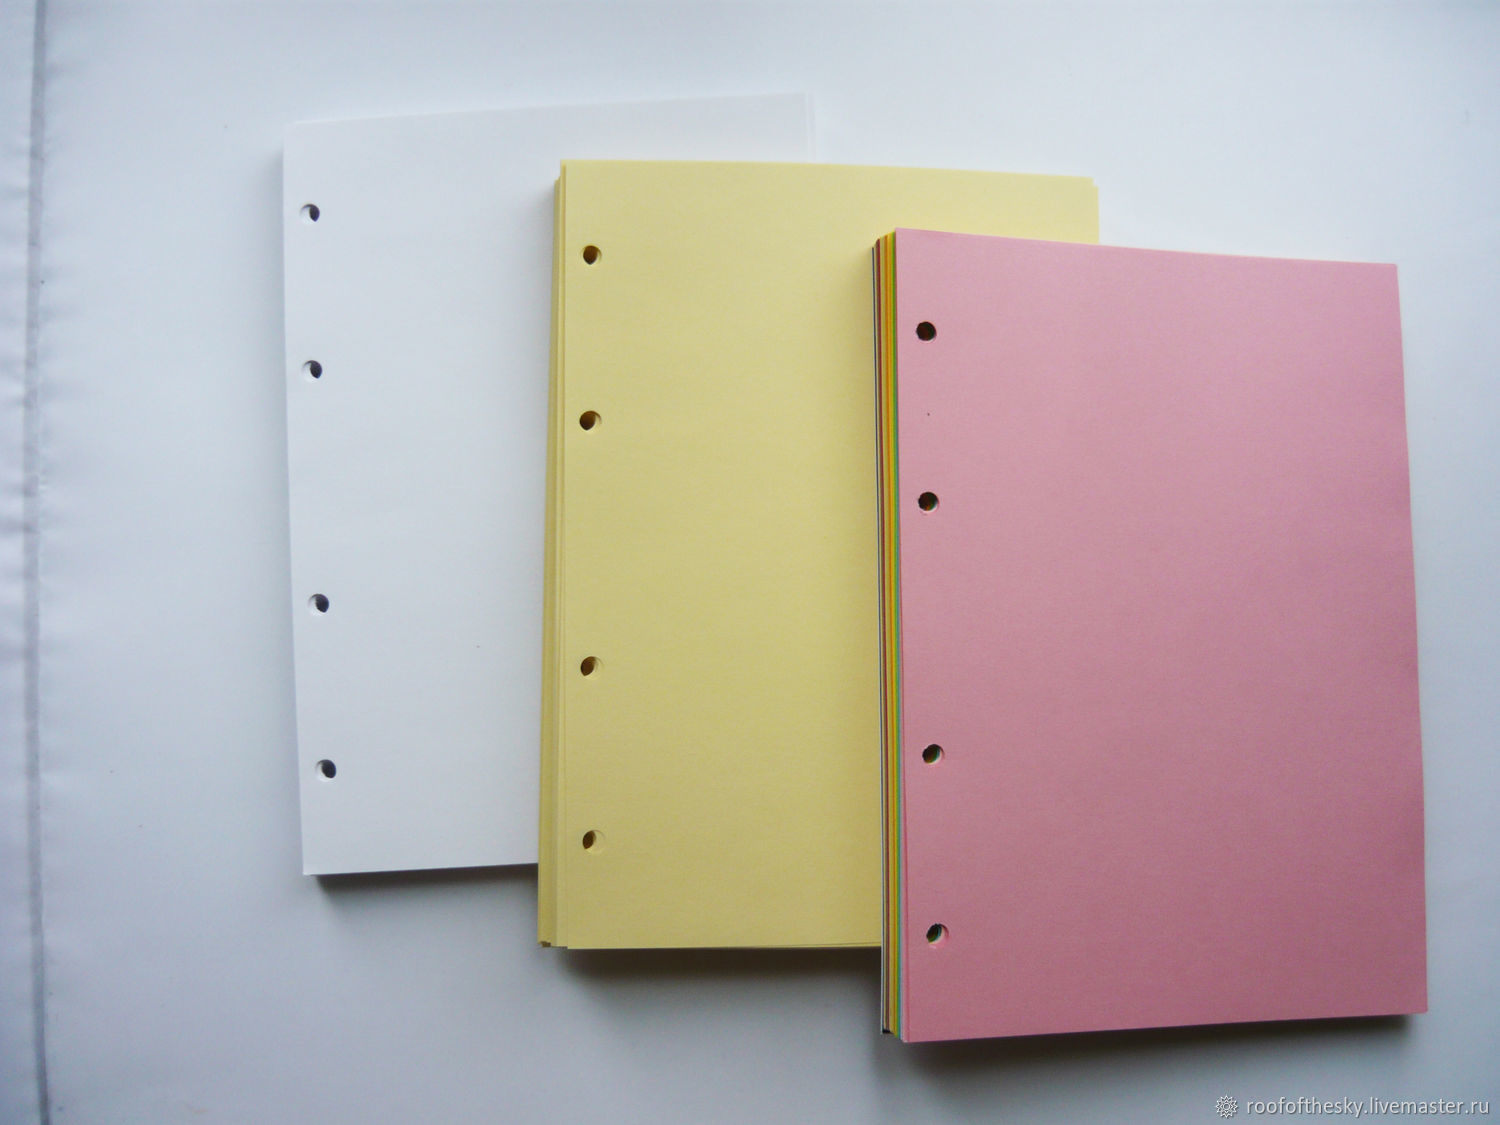 Refill unruled (white, black, colored paper), Notebooks, Moscow,  Фото №1